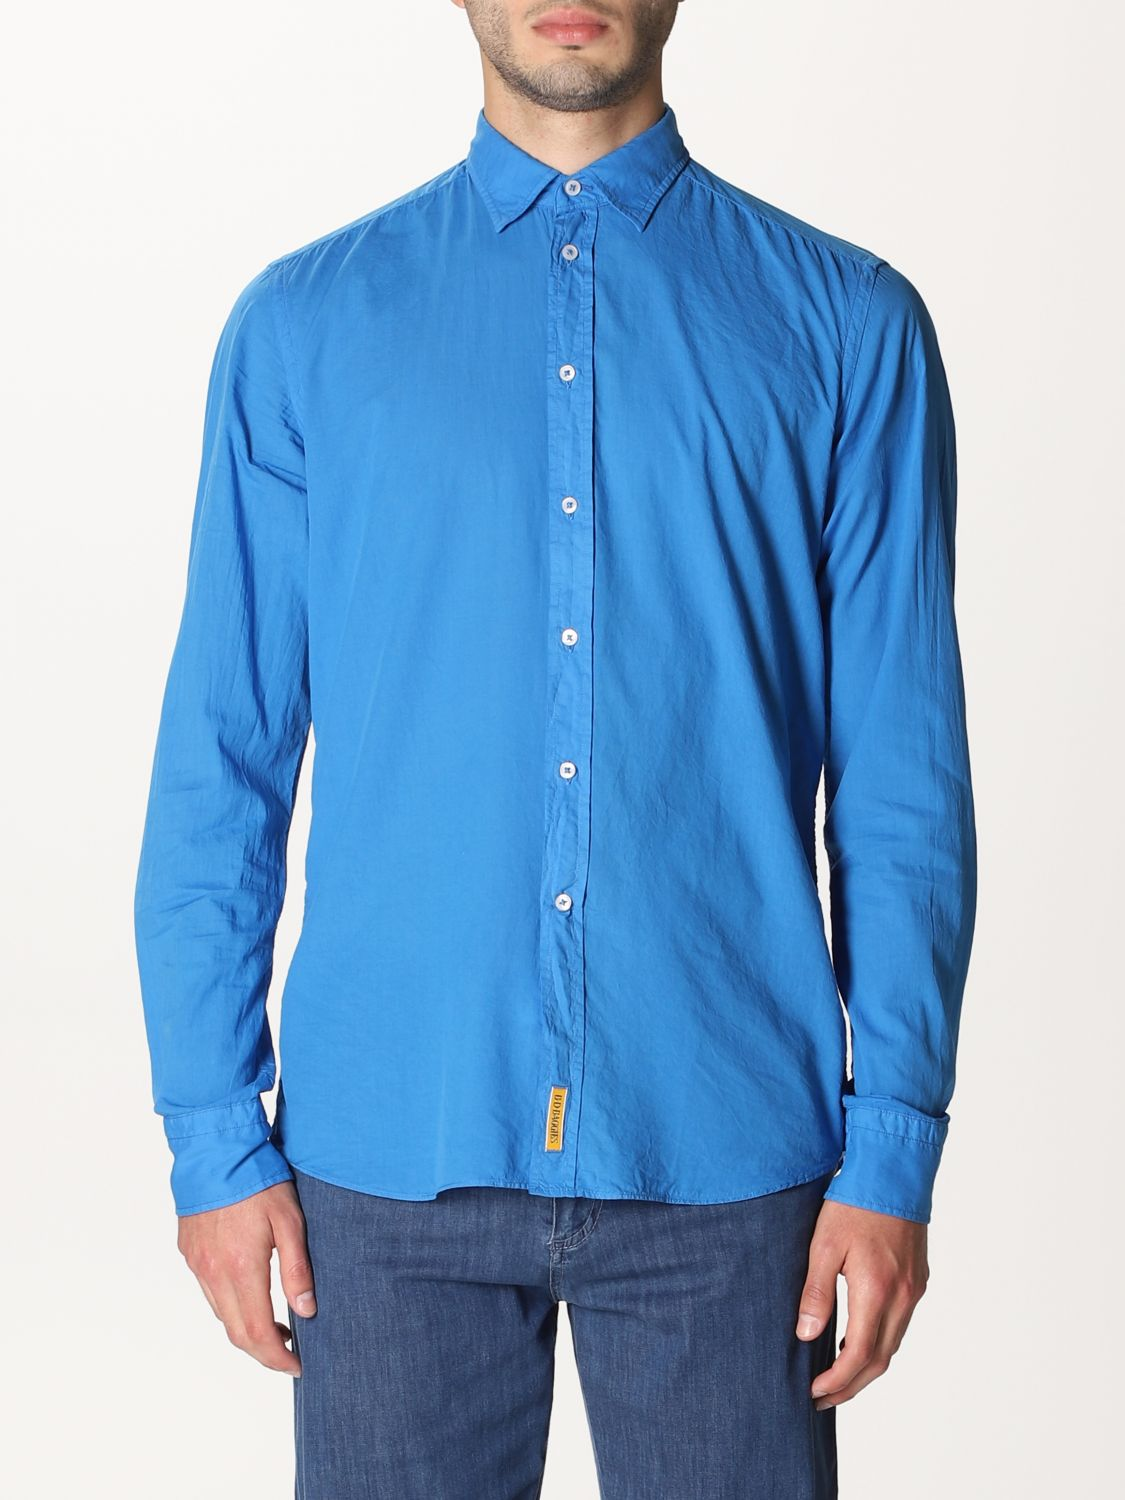 Shirt An American Tradition: Shirt men Bd Baggies royal blue 1